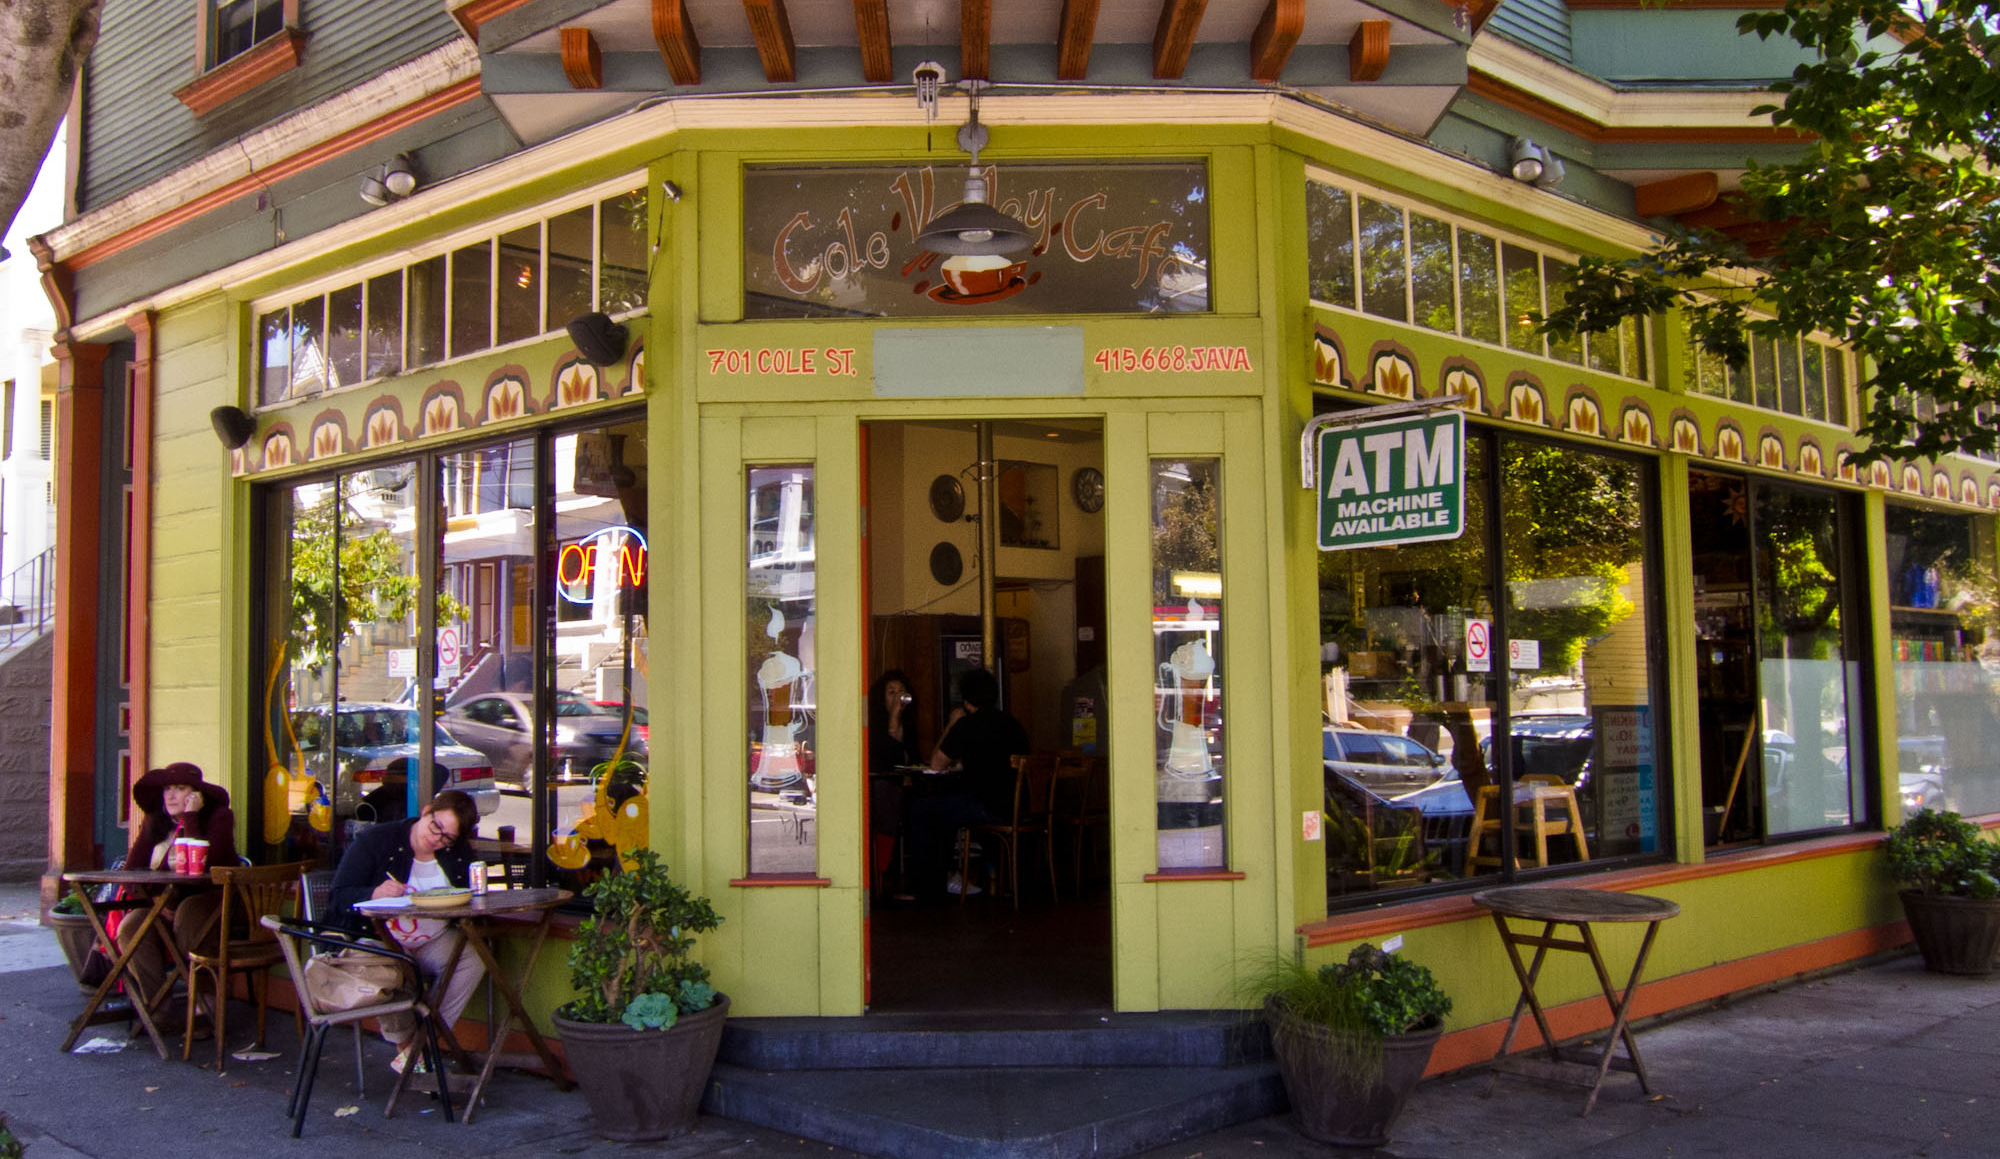 The Cole Street shopping district is a destination for great restaurants, coffee and gourmet shops, and a variety of mom-and-pop retail establishments.